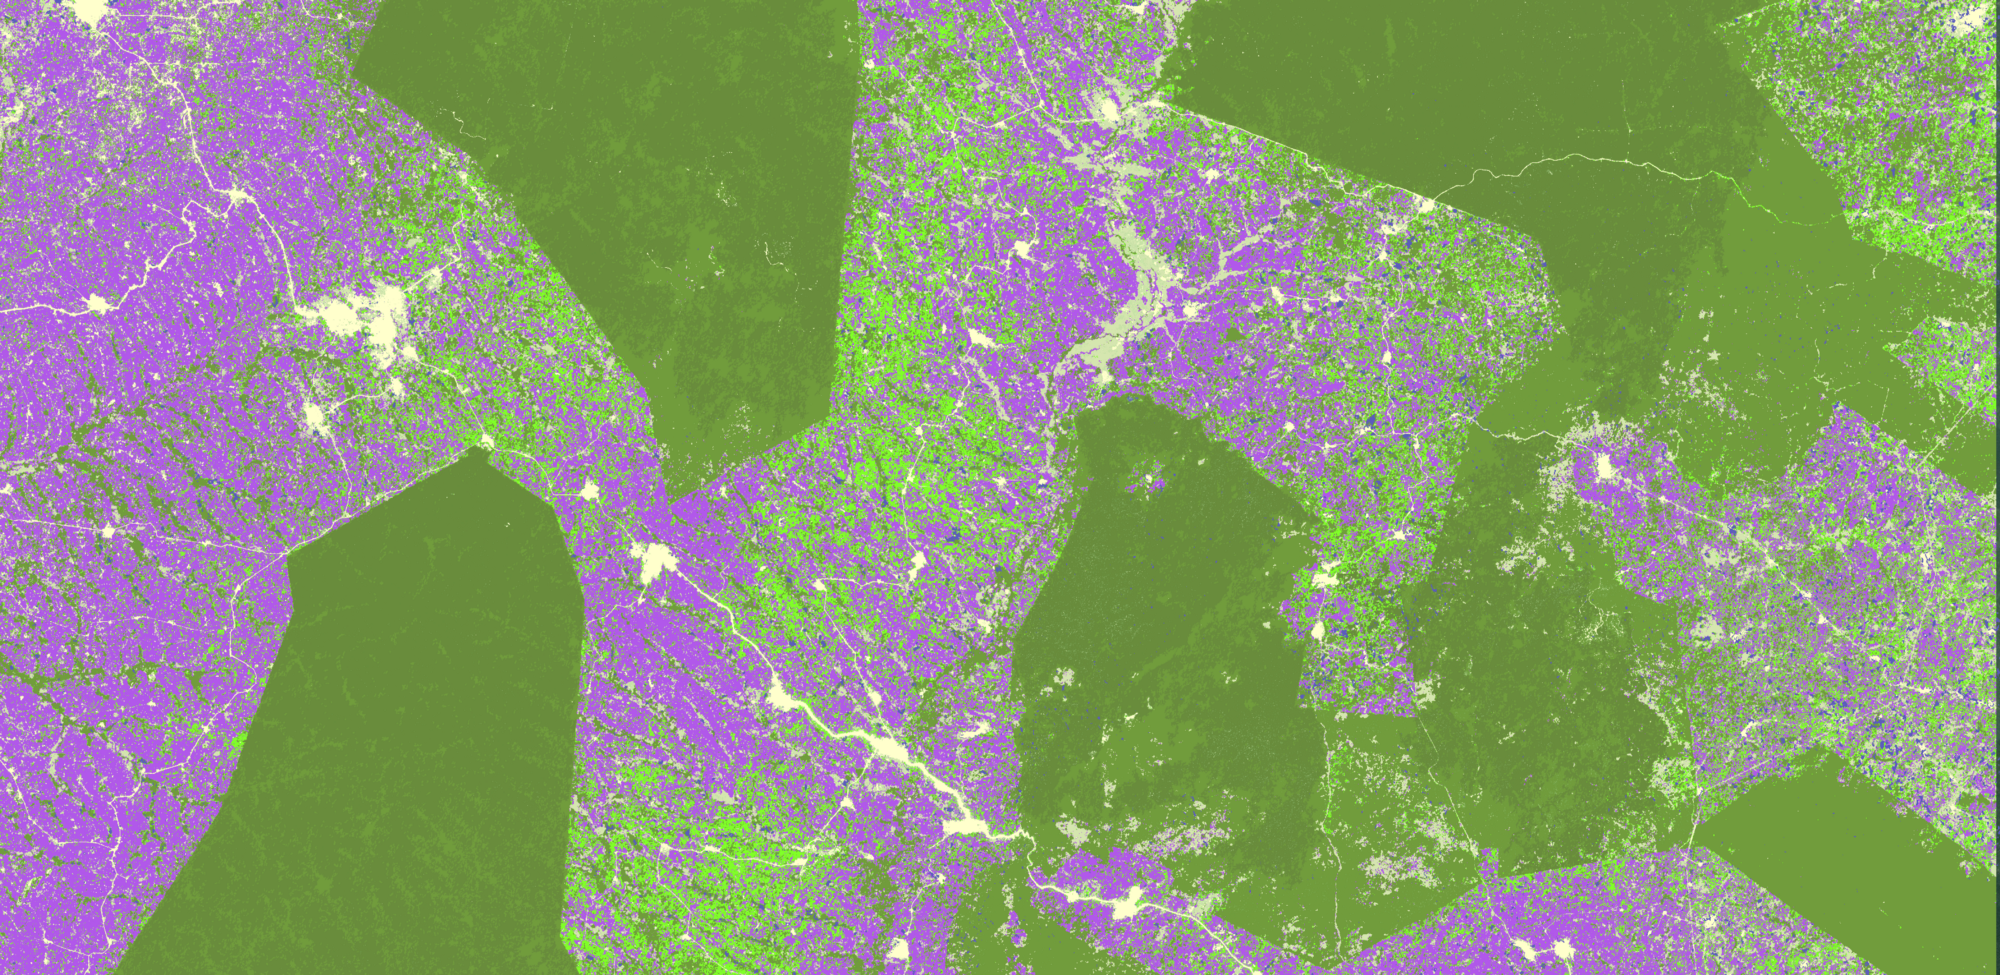 Cocoa and forest landscape in Ghana mapped by Satelligence, Ghanian GIS experts, with support from SNV, Forestry Commission of Ghana and Touton.